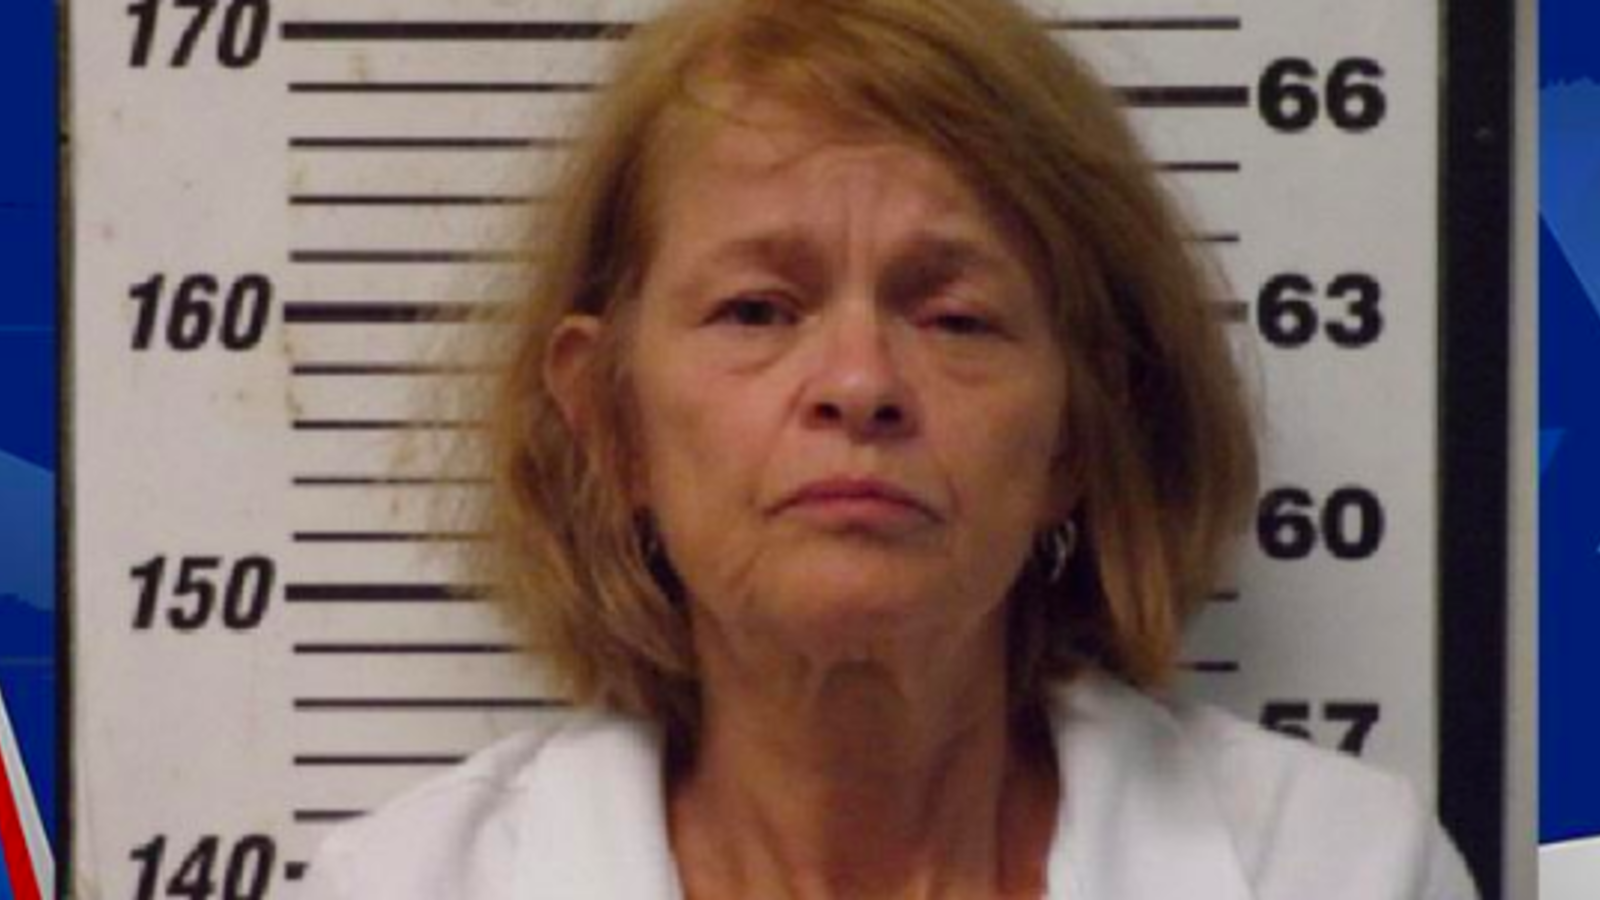 Victoria Thomas Frabutt (Source: Cateret County Detention Center)